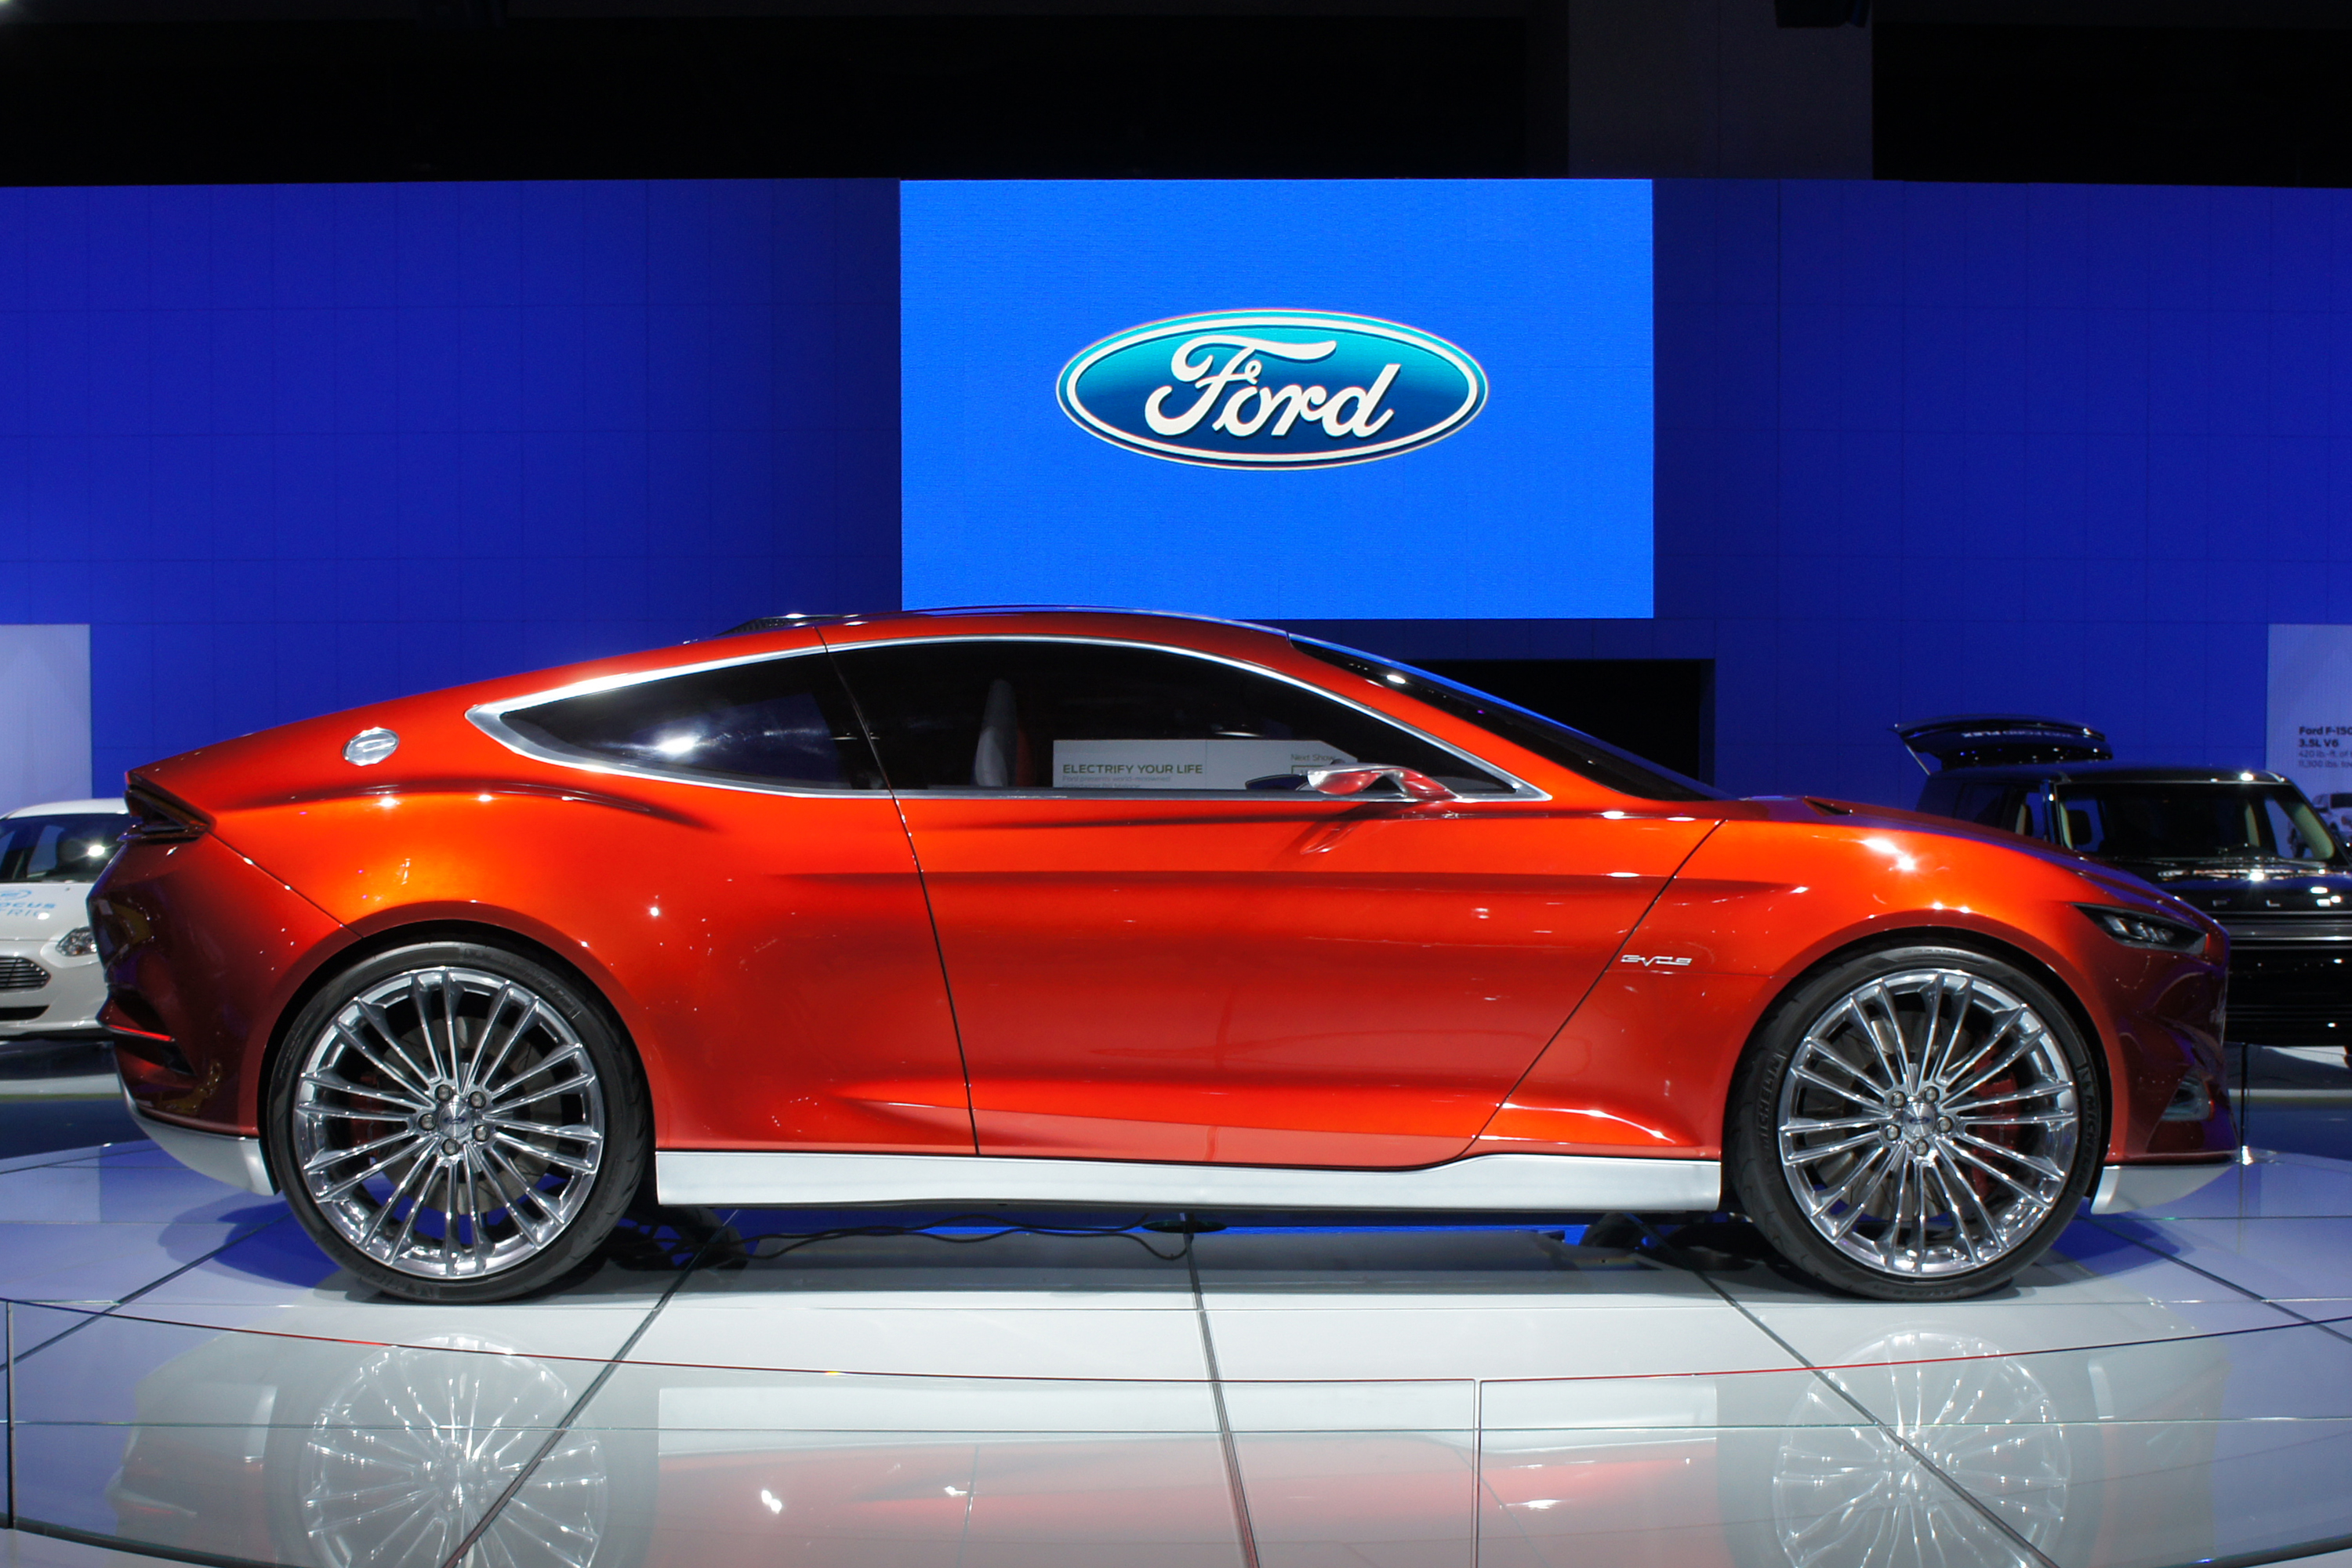 file ford evos plug in hybrid was 2012 0588 jpg wikimedia commons. Black Bedroom Furniture Sets. Home Design Ideas